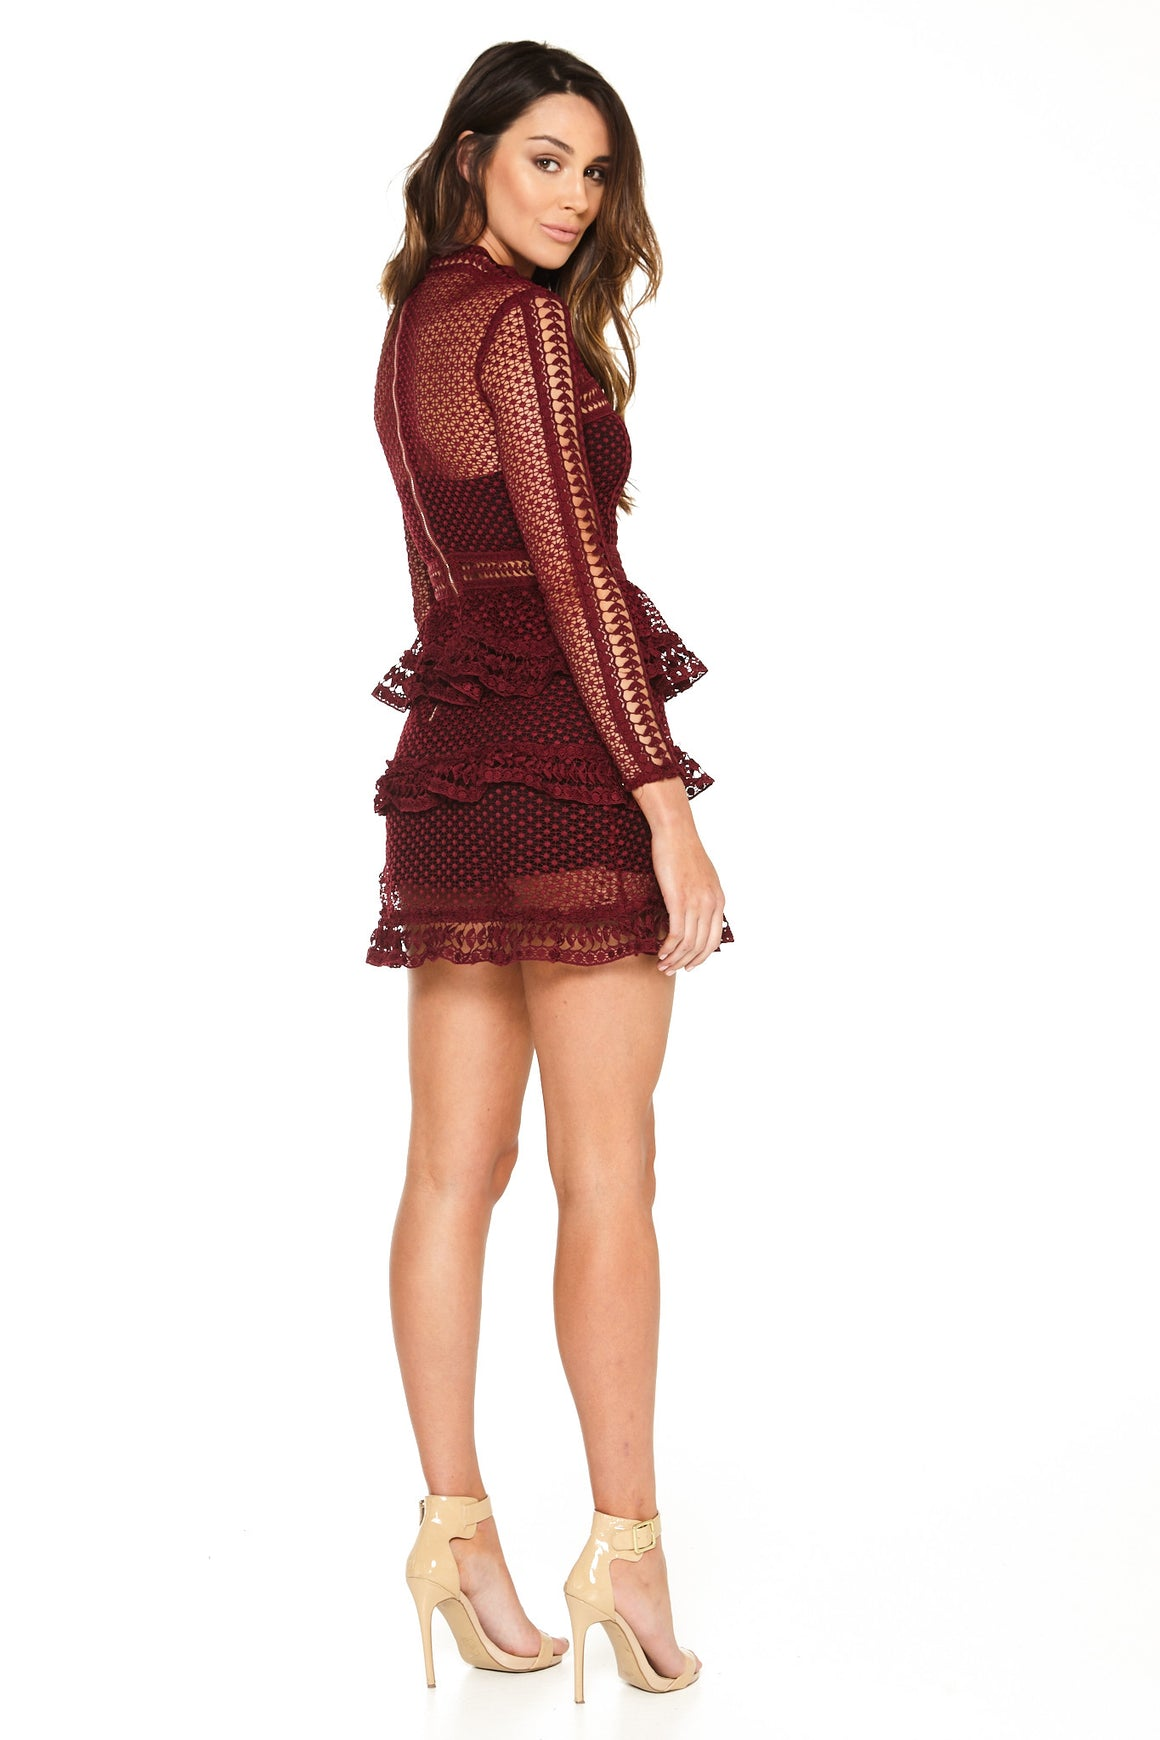 Sienna Lace Peplum Dress - Maroon [SAMPLE SALE]